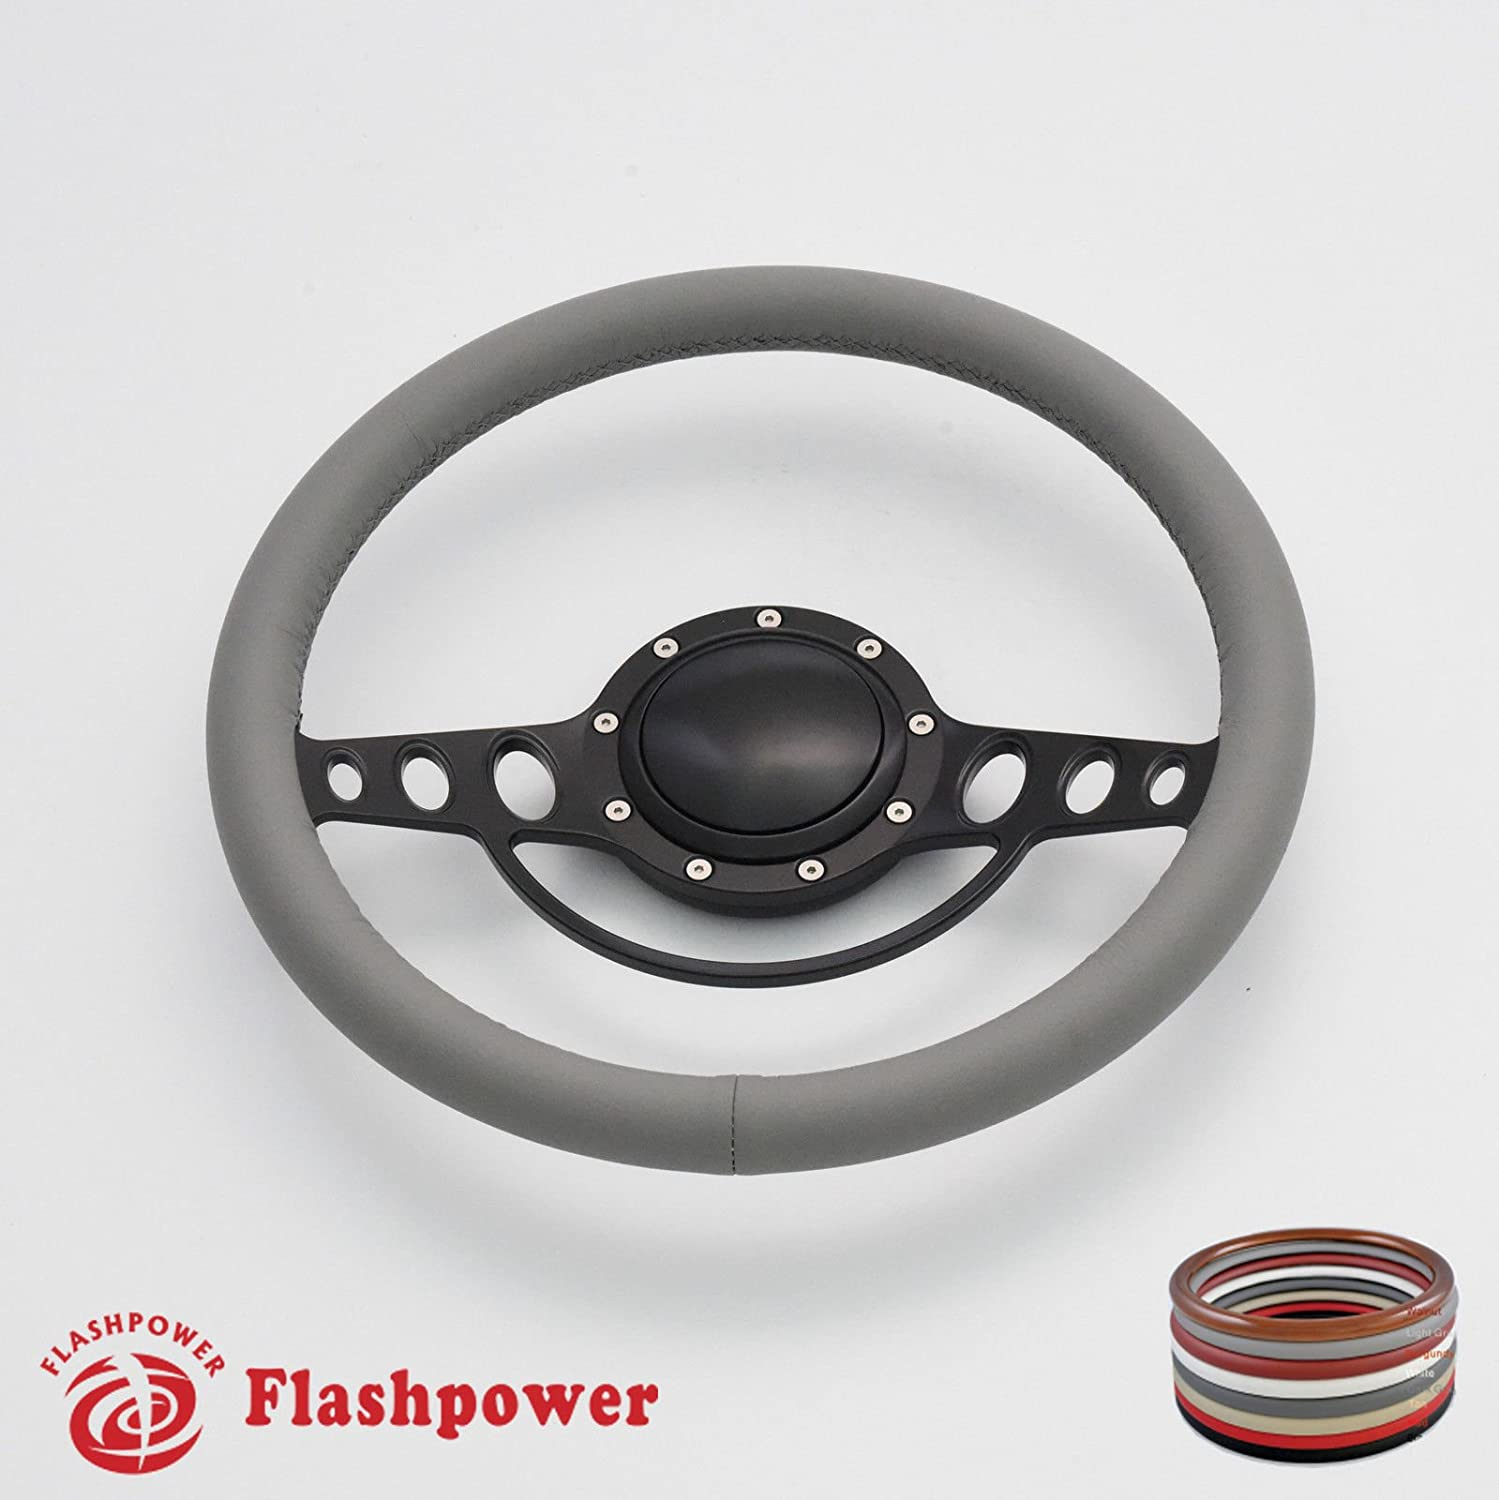 Flashpower 14 Good Times Billet Full Wrap 9 Bolts Steering Wheel with 2 Dish and Horn Button Tan